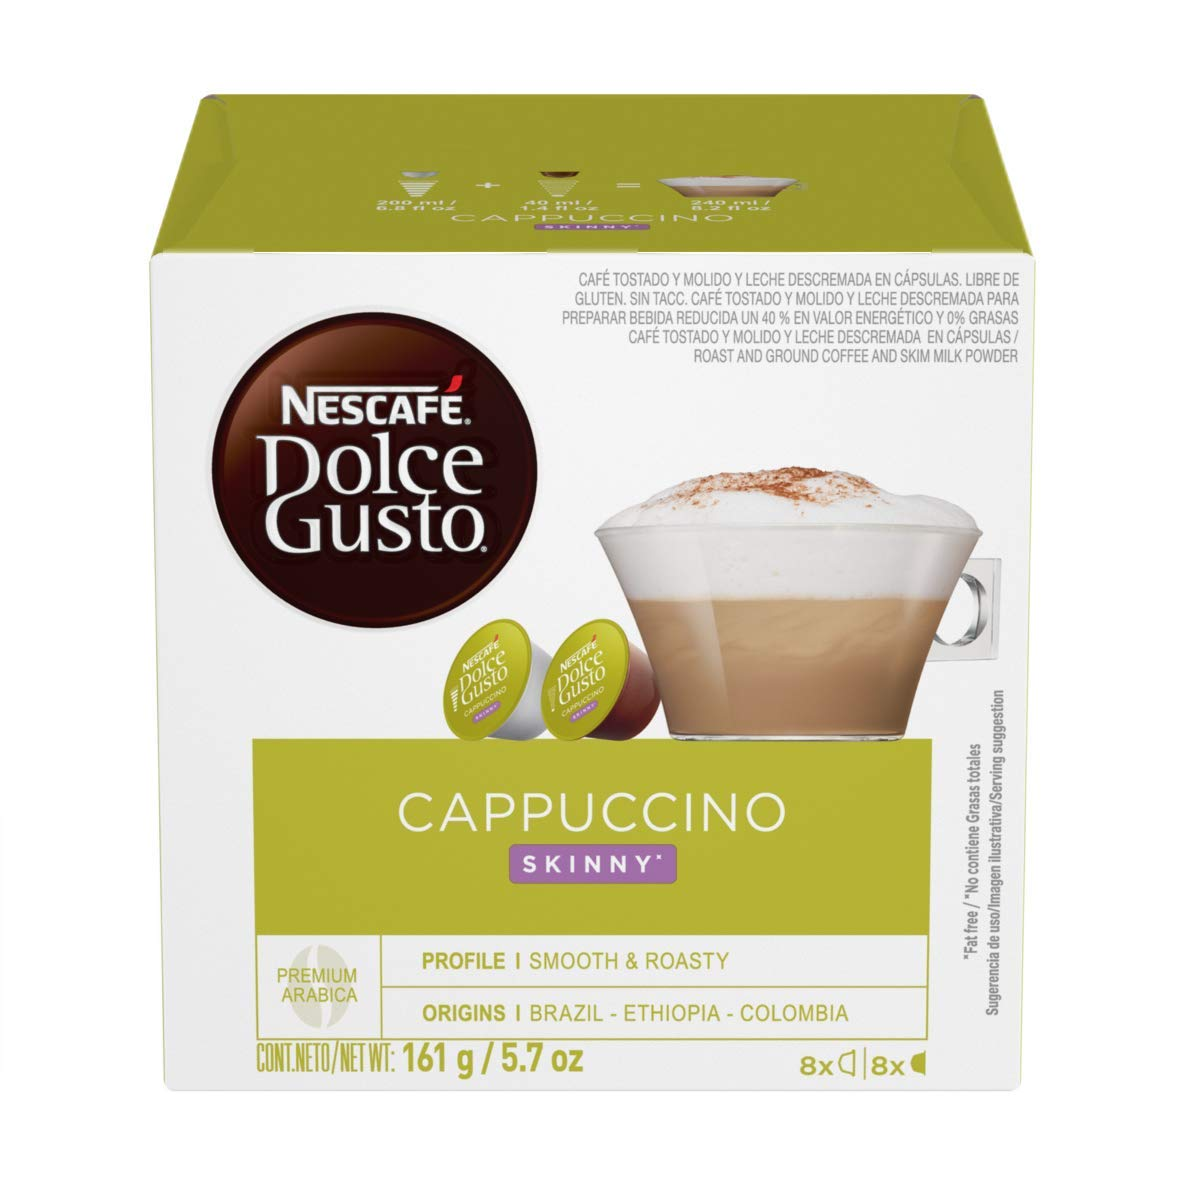 Nescafe Dolce Gusto Pods, Skinny Cappuccino, 16 capsules, Pack of 3